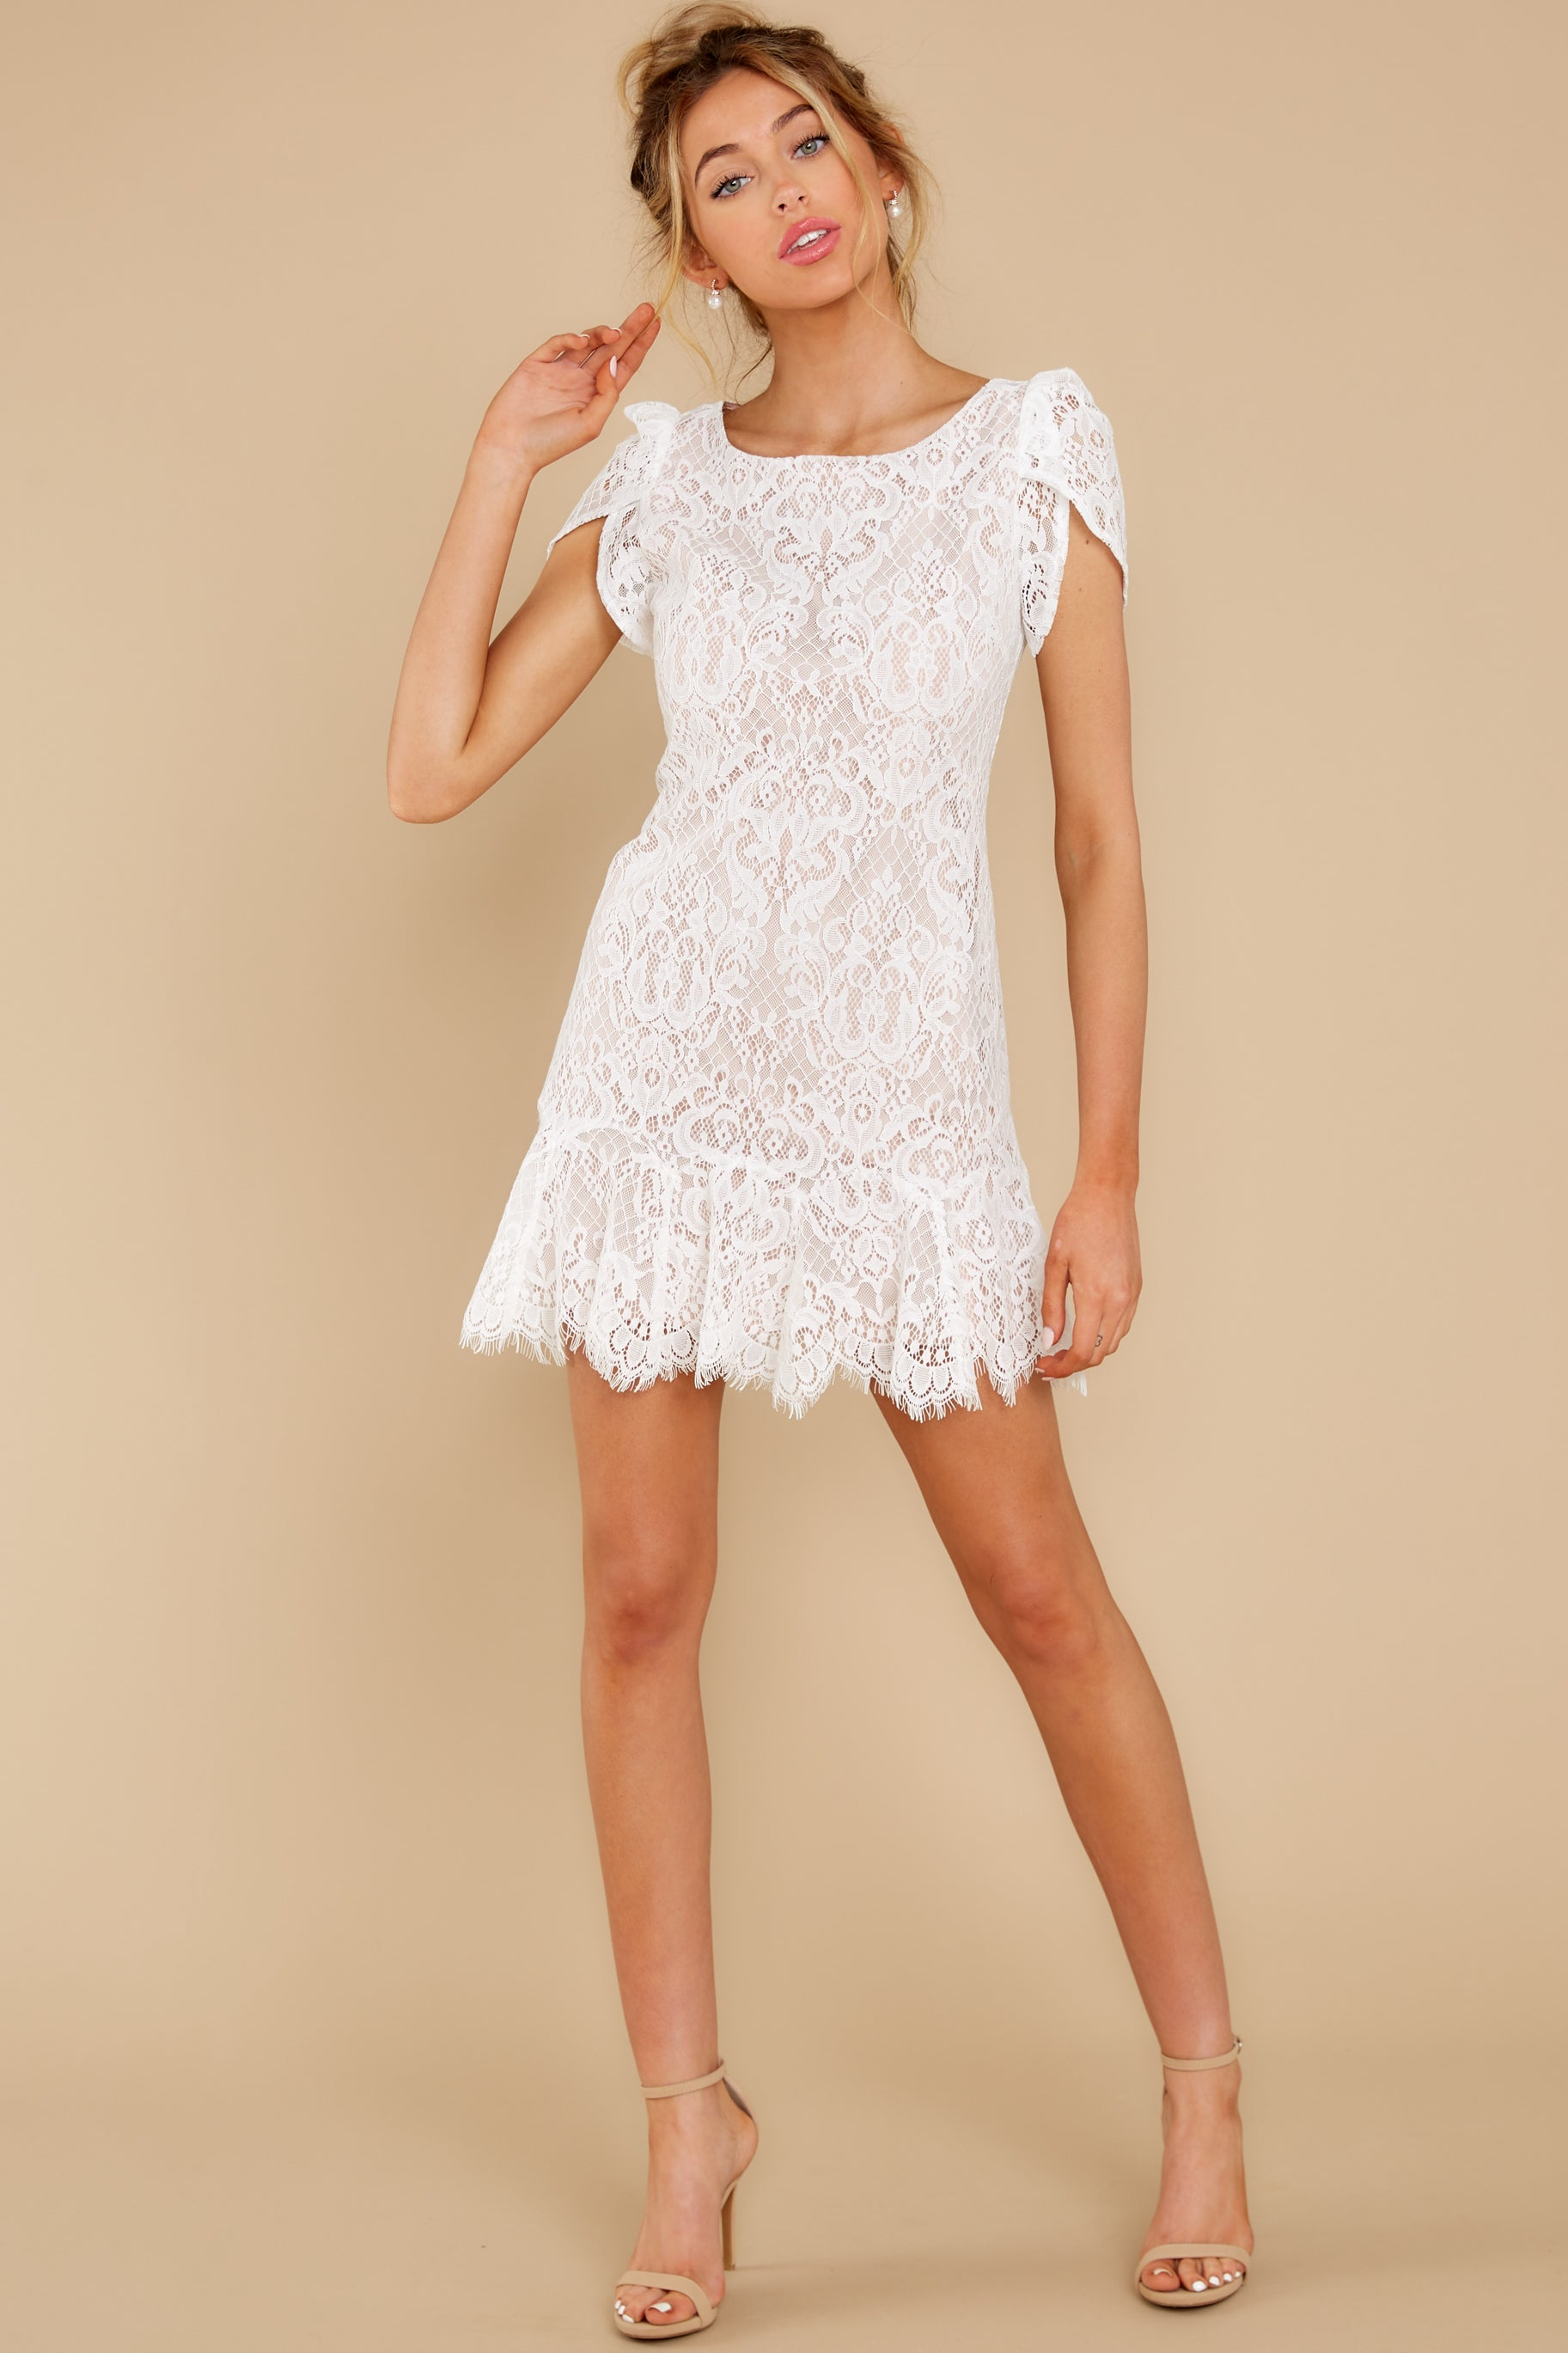 4 First Touch Ivory Lace Dress at reddress.com